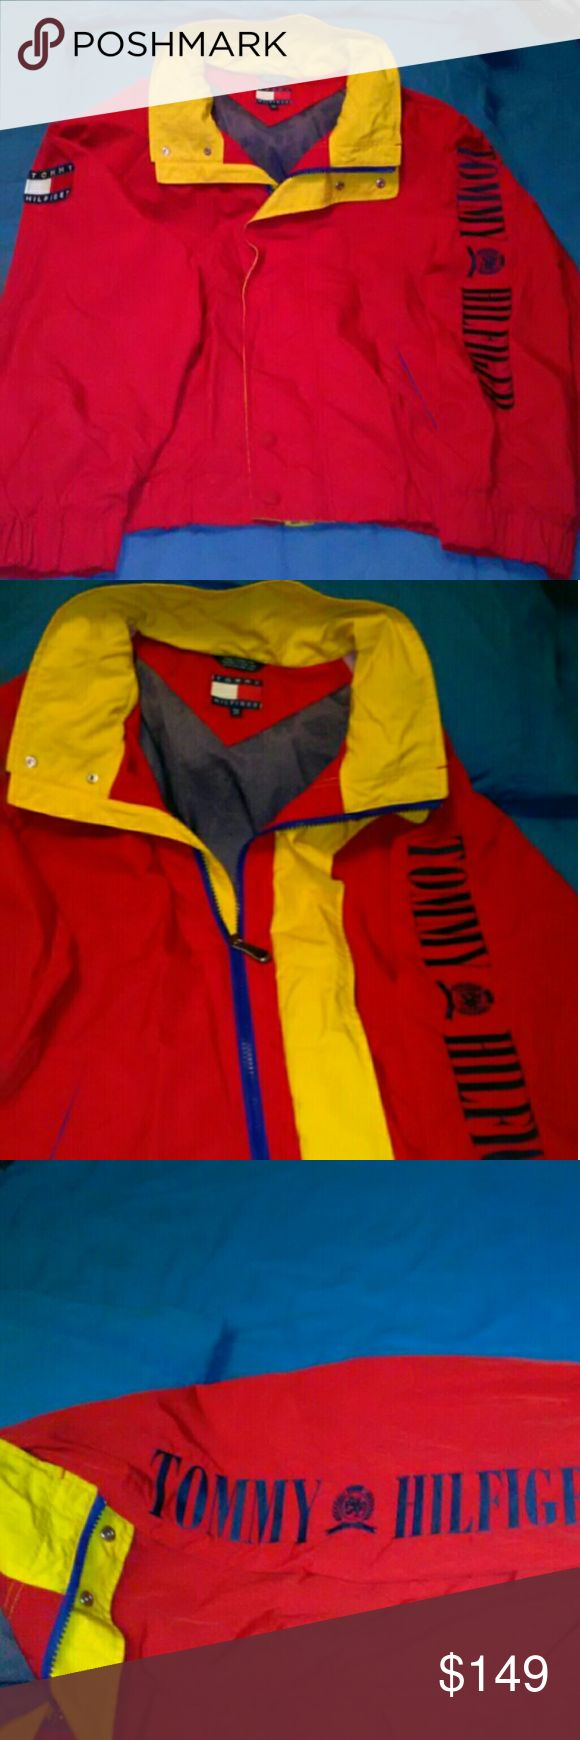 🇺🇸 Tommy Hilfiger 🇺🇸  Men's 🆒 Vintage Jacket 🆒  🇺🇸 Tommy Hilfiger 🇺🇸 Vintage Jacket  🌟 Like New 🌟 - Only worn few times  ⏩Colors: Red with Yellow & Blue Trim ⏩Tommy Flag on Shoulder ⏩Tommy Hilfiger Spell-out on Sleeve ⏩Size XXL ⏩Light/Medium Weight ⏩Zipper & Button Front Closure ⏩Two Exterior Pockets ⏩Fold Away Hood ⏩Stretch Elastic Cuffs & Waistband ⏩Fabric Nylon Exterior & Polyester Lining ⏩No Noticable Flaws or Defects Tommy Hilfiger Jackets & Coats Bomber & Varsity